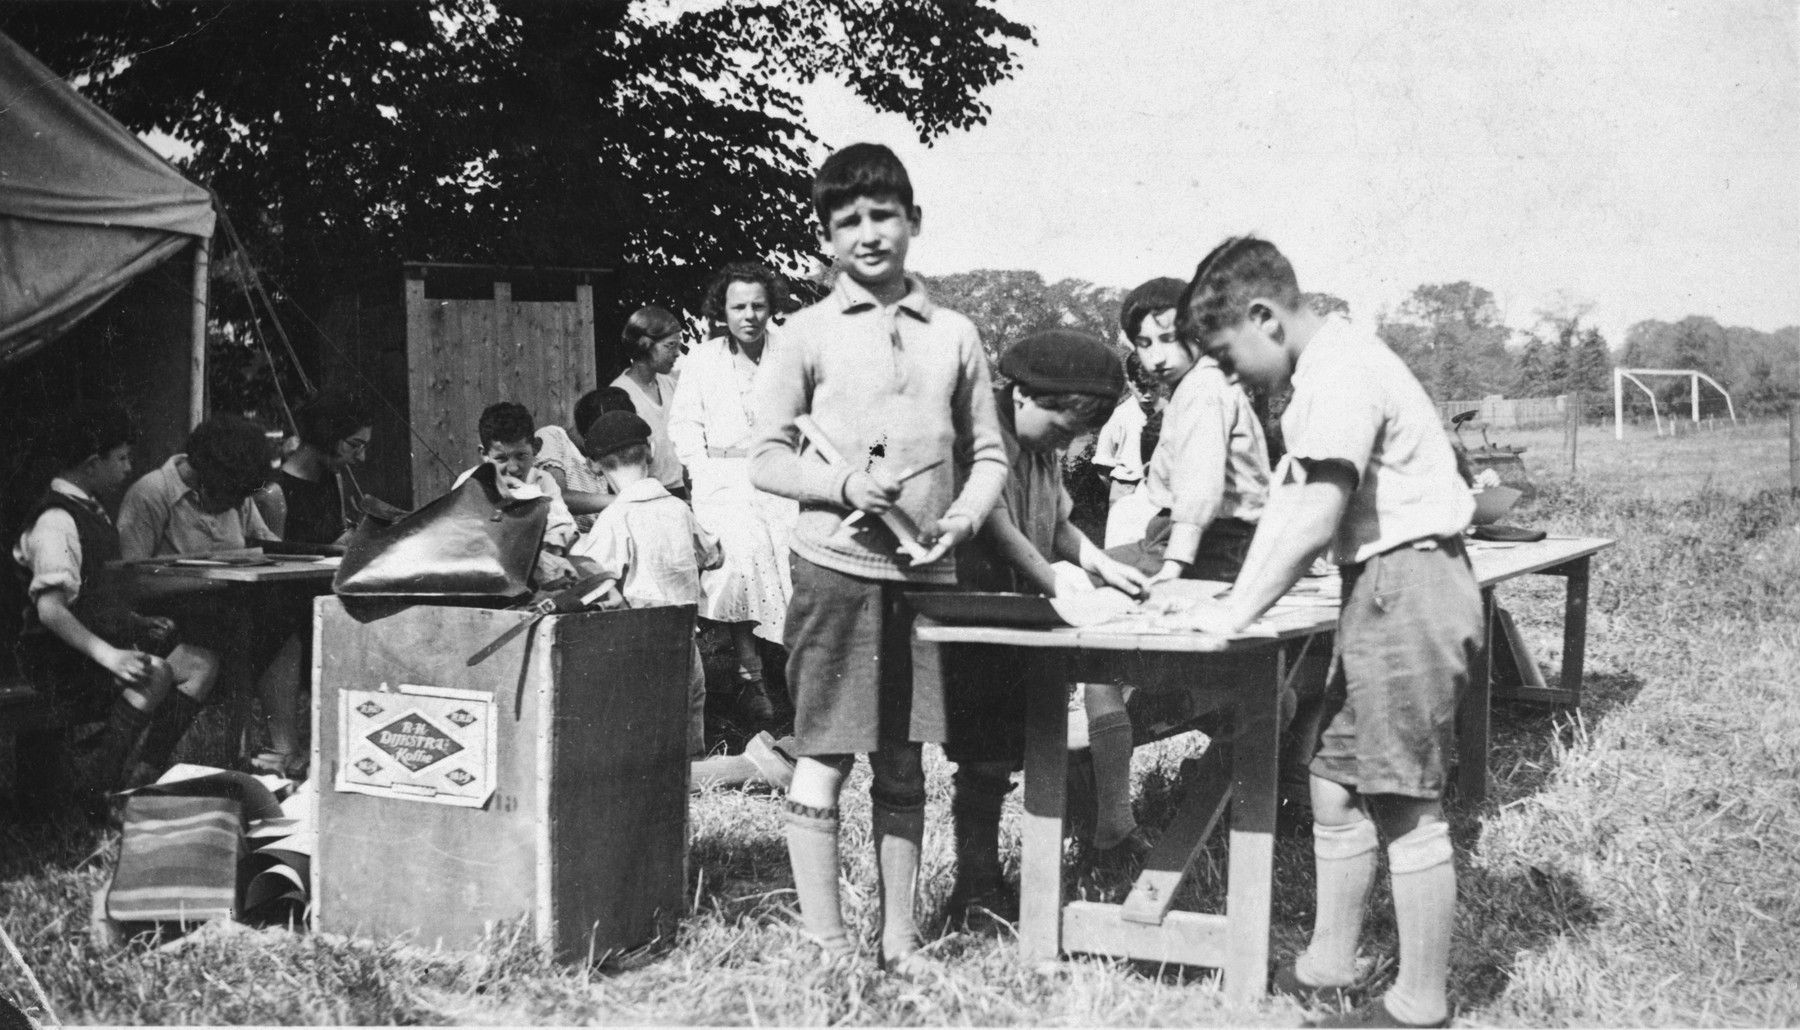 Children work on an outdoor art project in a Jewish summer camp in The Netherlands.  Pictured in the back is the counselor, Letty Rudelsheim.